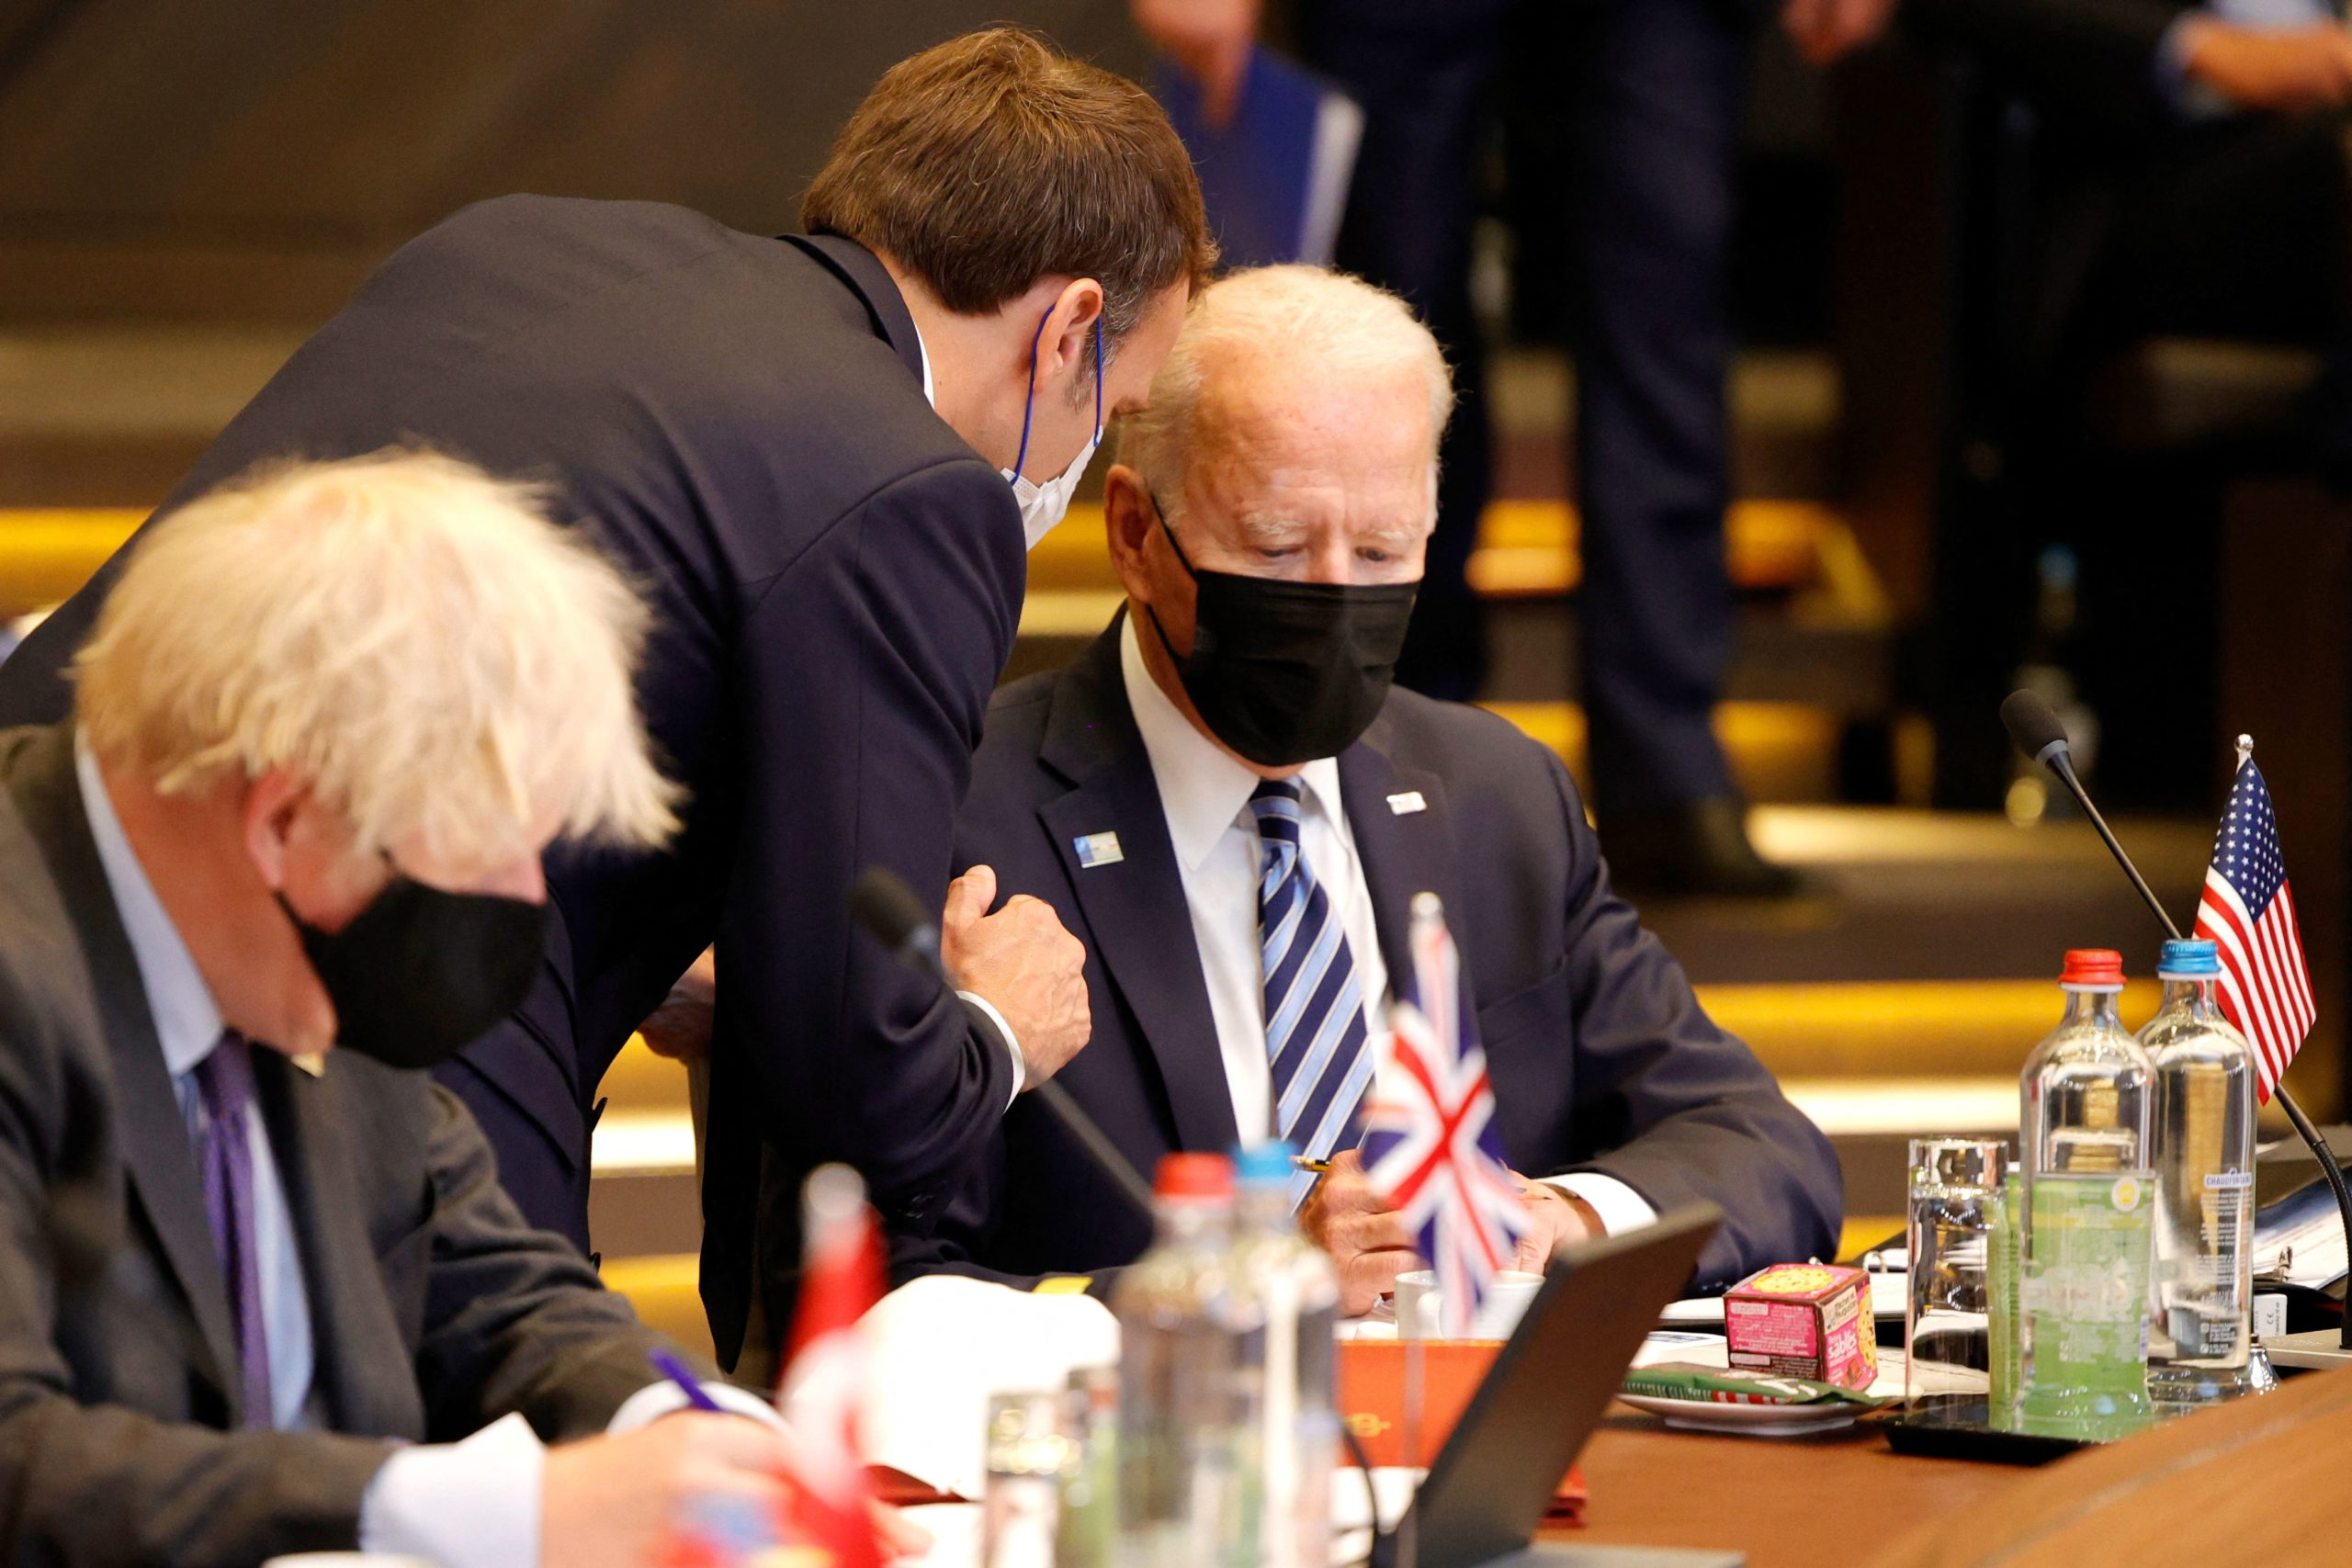 French President Emmanuel Macron (L) speaks with US President Joe Biden (R) during a plenary session of a NATO summit at the North Atlantic Treaty Organization (NATO) headquarters in Brussels, on June 14, 2021.